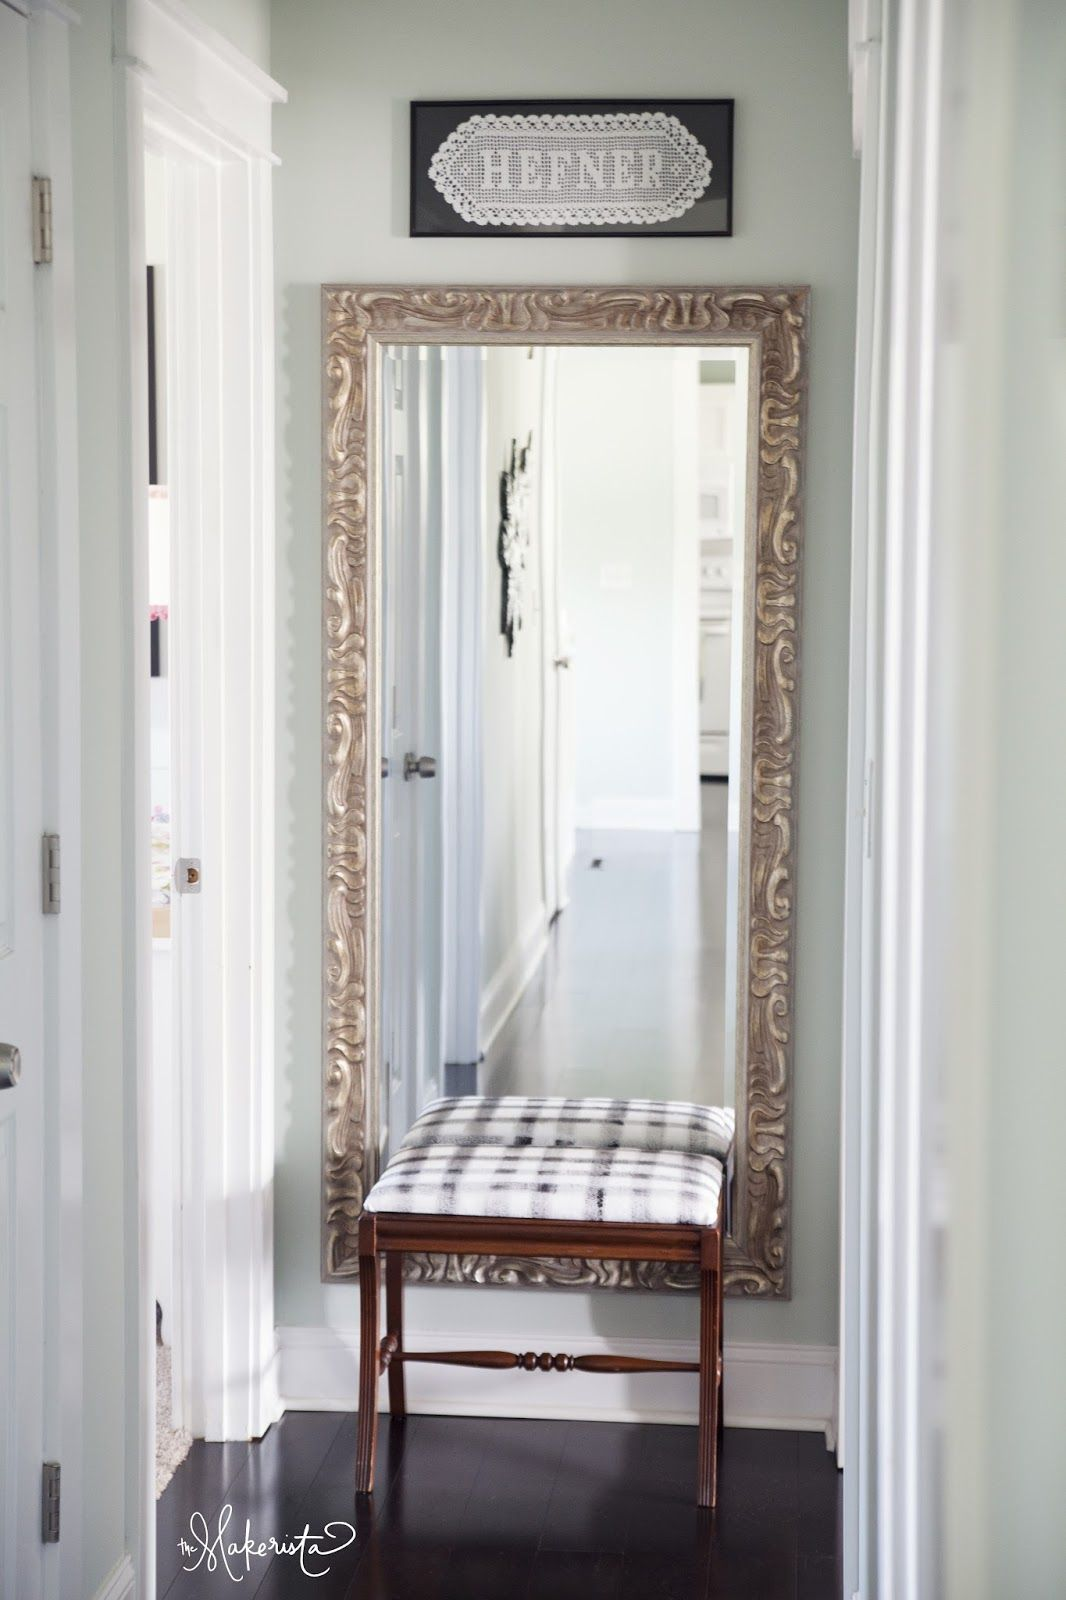 Making It Work Diy Abstract Black And White Fabric And Bench Upholstery Tutorial The Makerista Hallway Designs Narrow Hallway Decorating Hallway Wall Decor